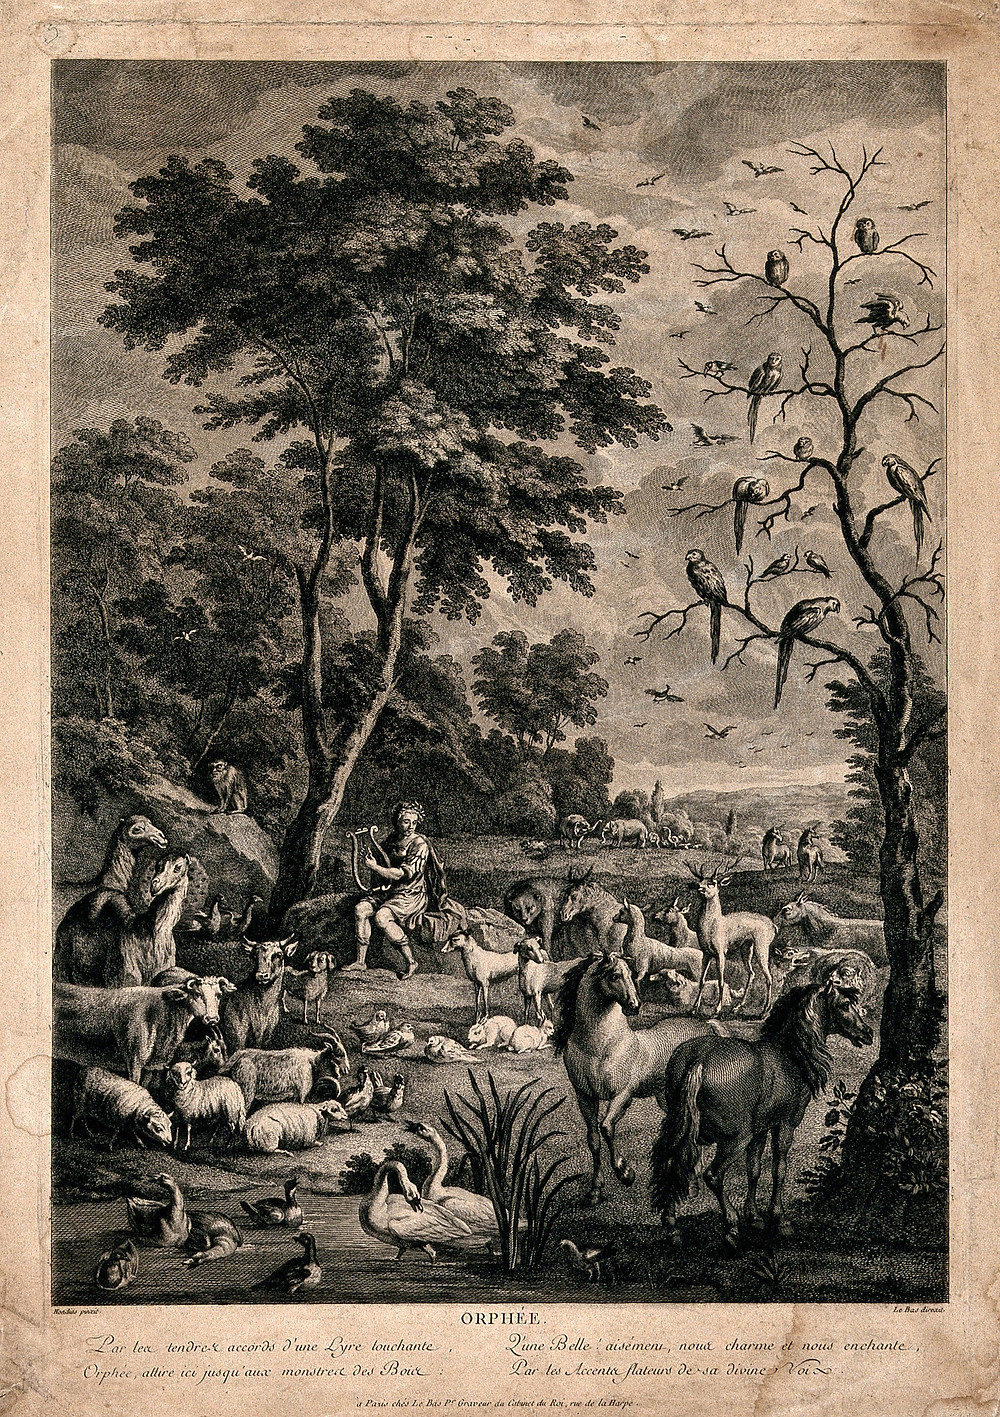 Orpheus charming the animals with music. Engraving by J.P. Le Bas after A. Hondius. Hondius, Abraham, 1625-1695. Date 1700-1799